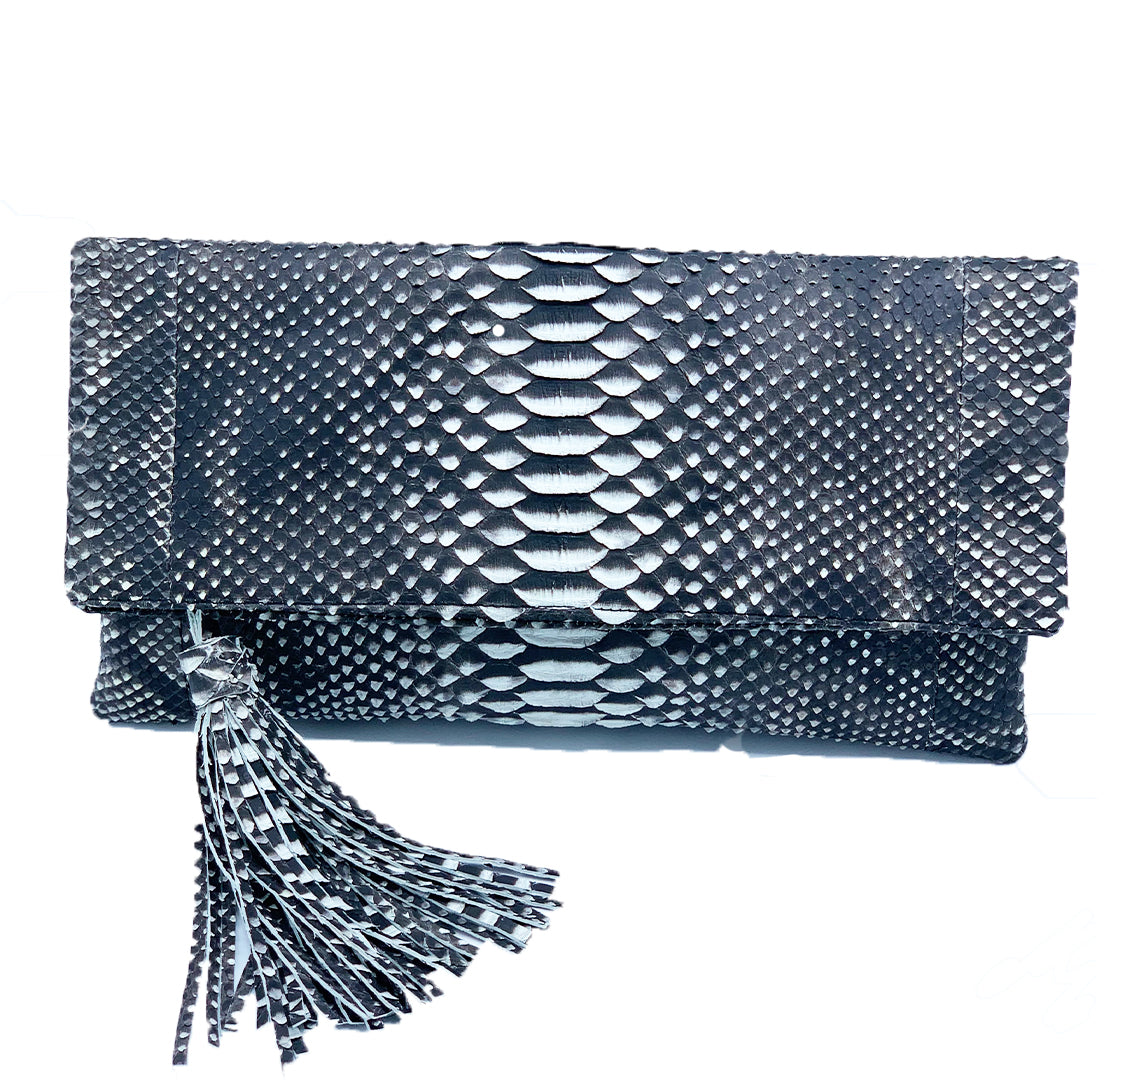 CAMILLA - Black & White Clutch